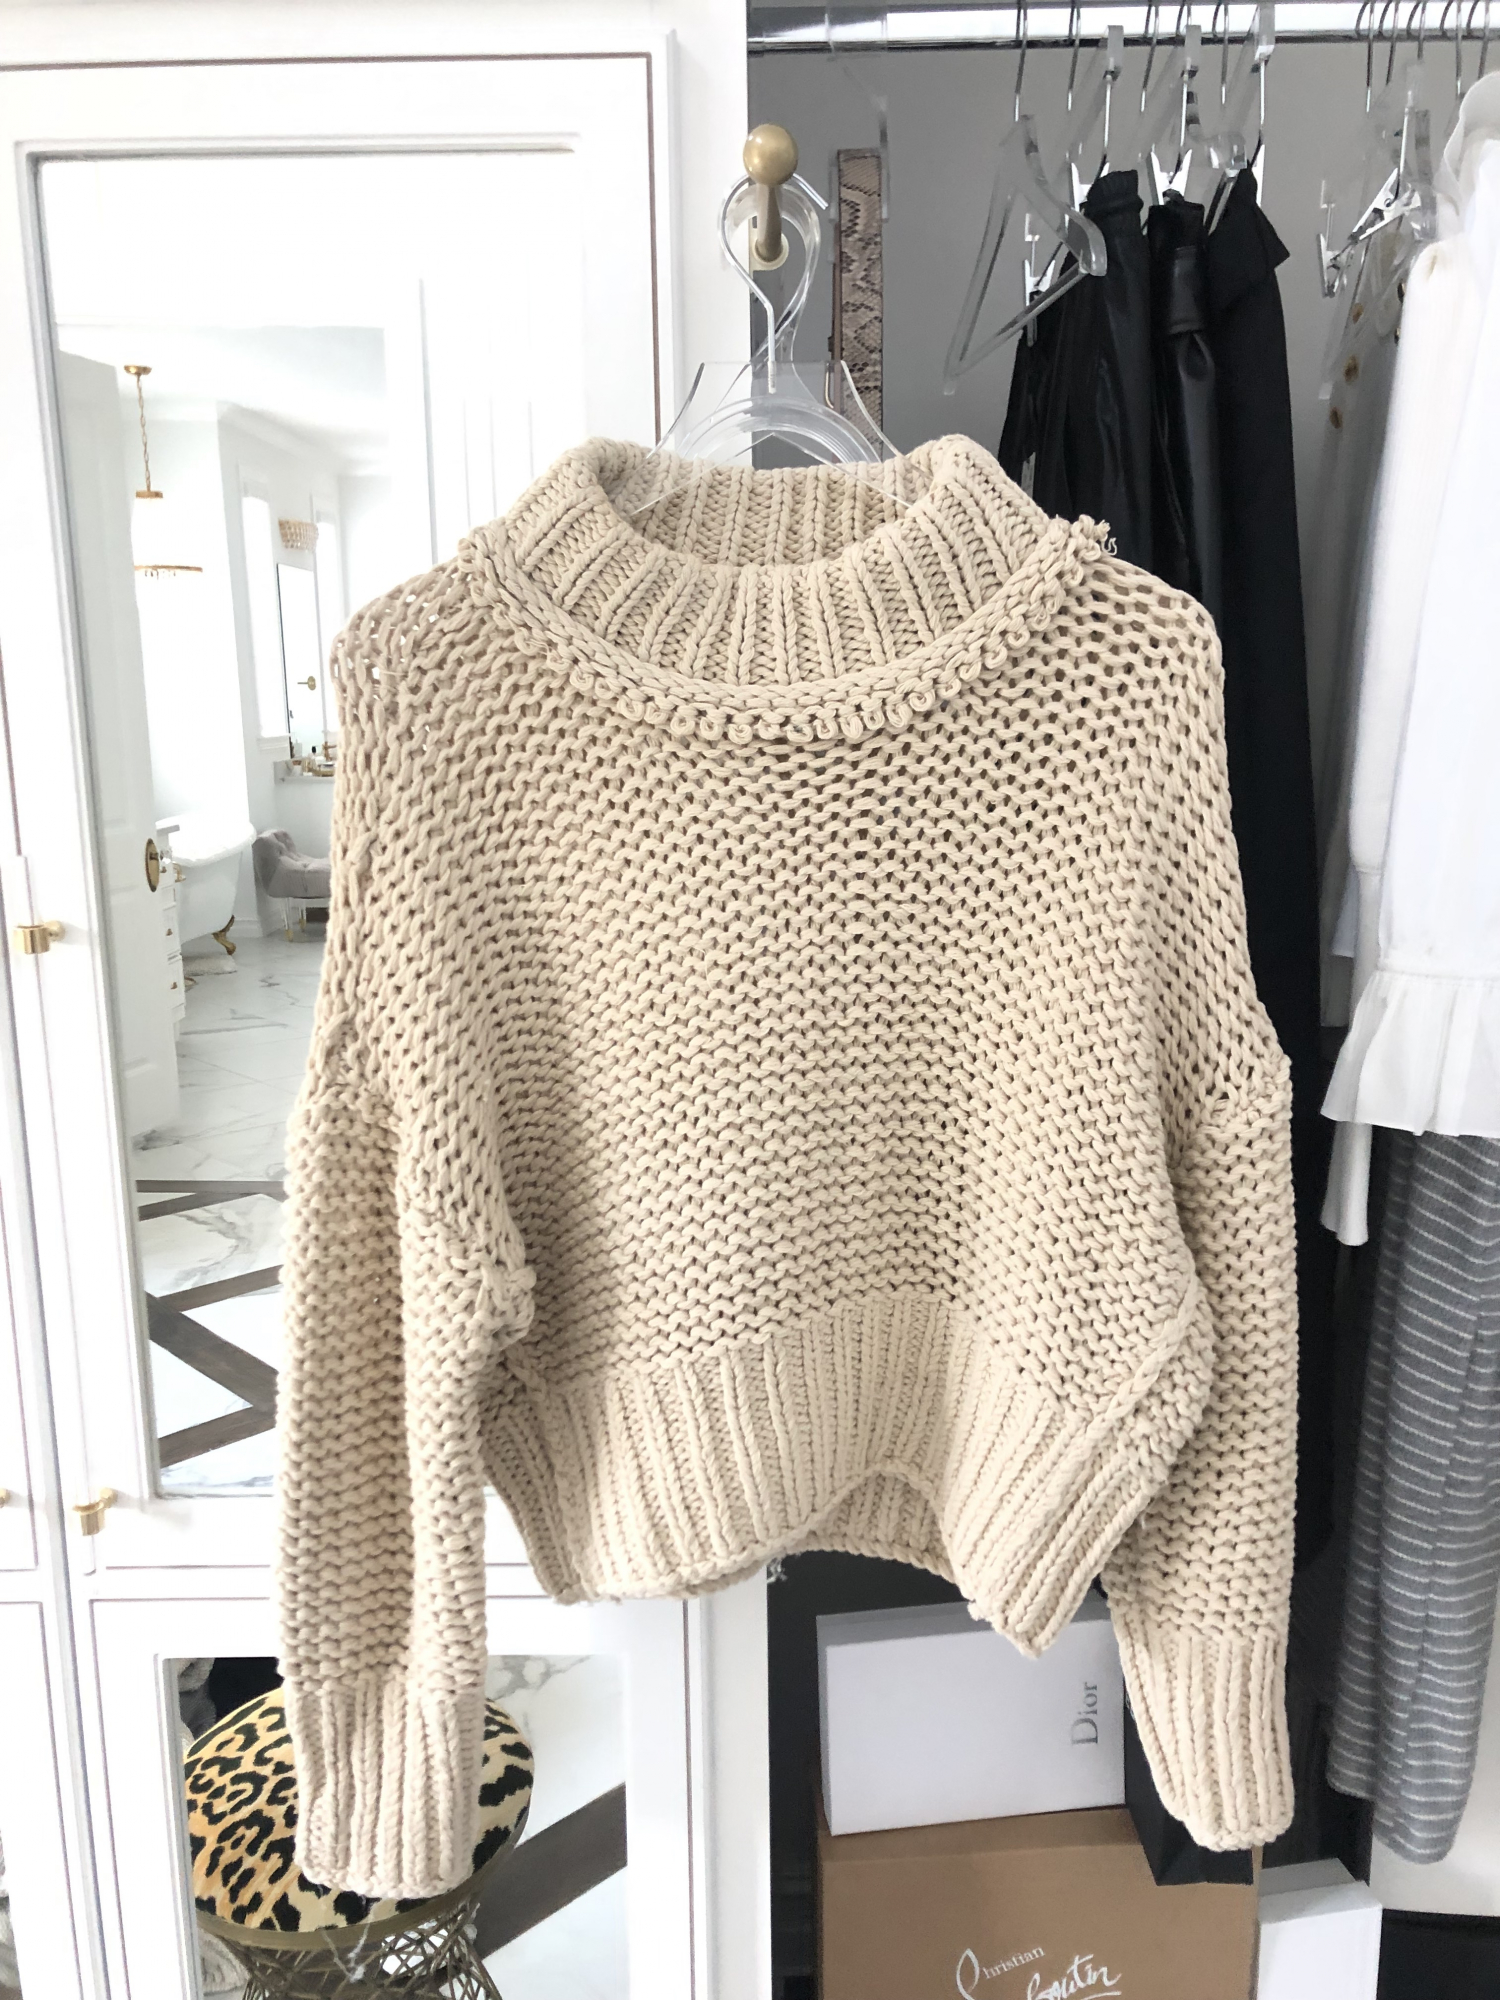 Shopbop sale fall 2019, fall fashion 2019 pinterest outfits,emily gemma | Major ShopBop Sale Alert‼️[25% Off My Most Popular Outfits!] by popular Oklahoma fashion blog, The Sweetest Thing: image of a woman wearing ShopBop knitted sweater.